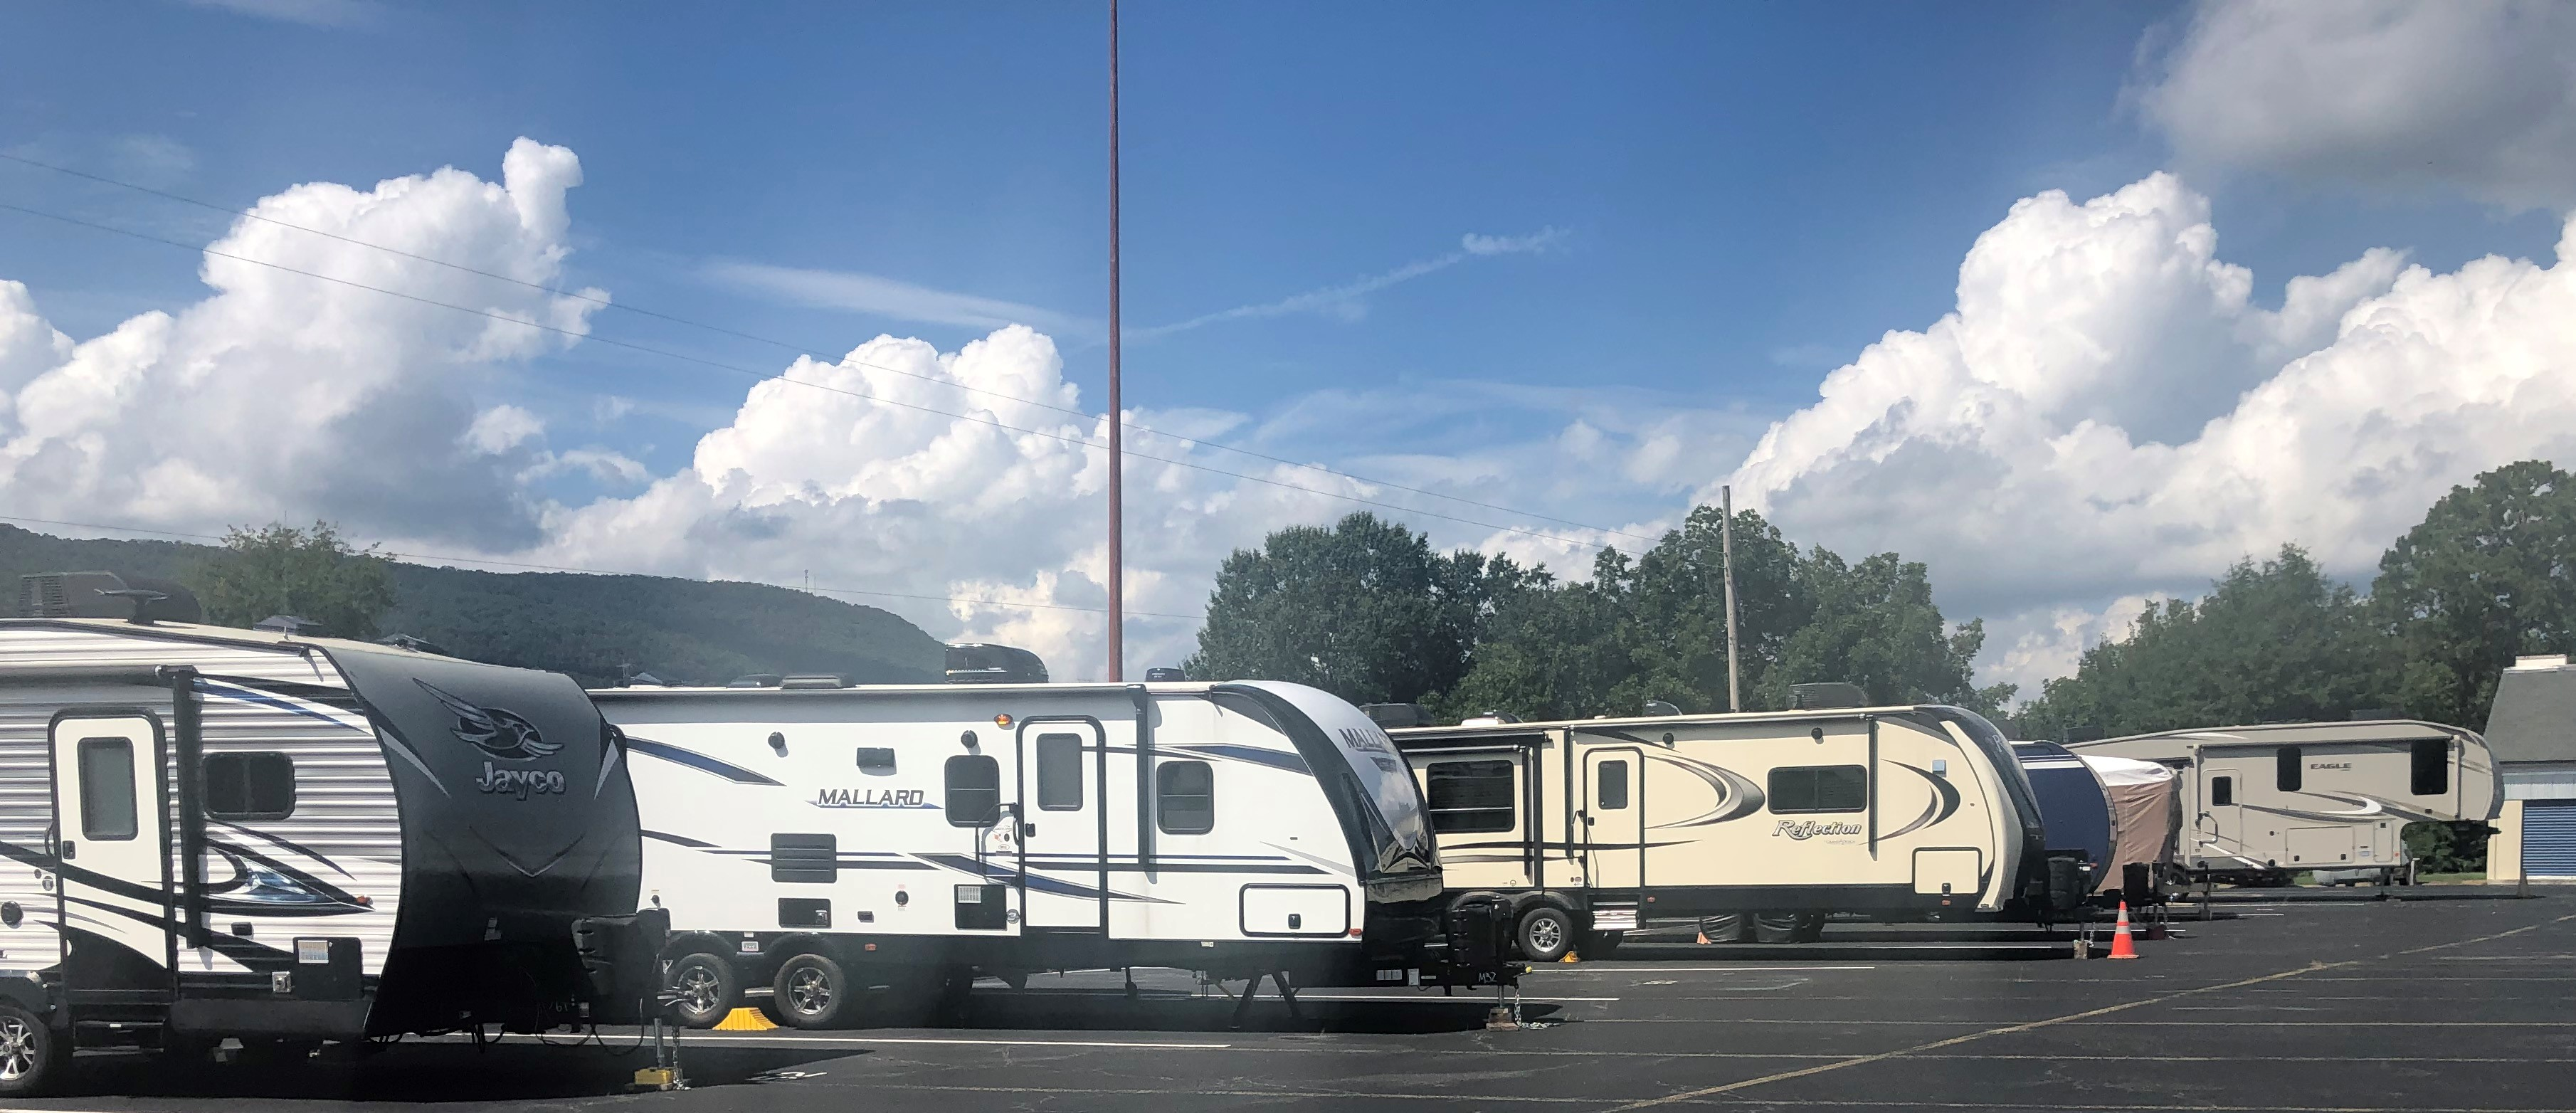 RV Parking in Chattanooga, TN